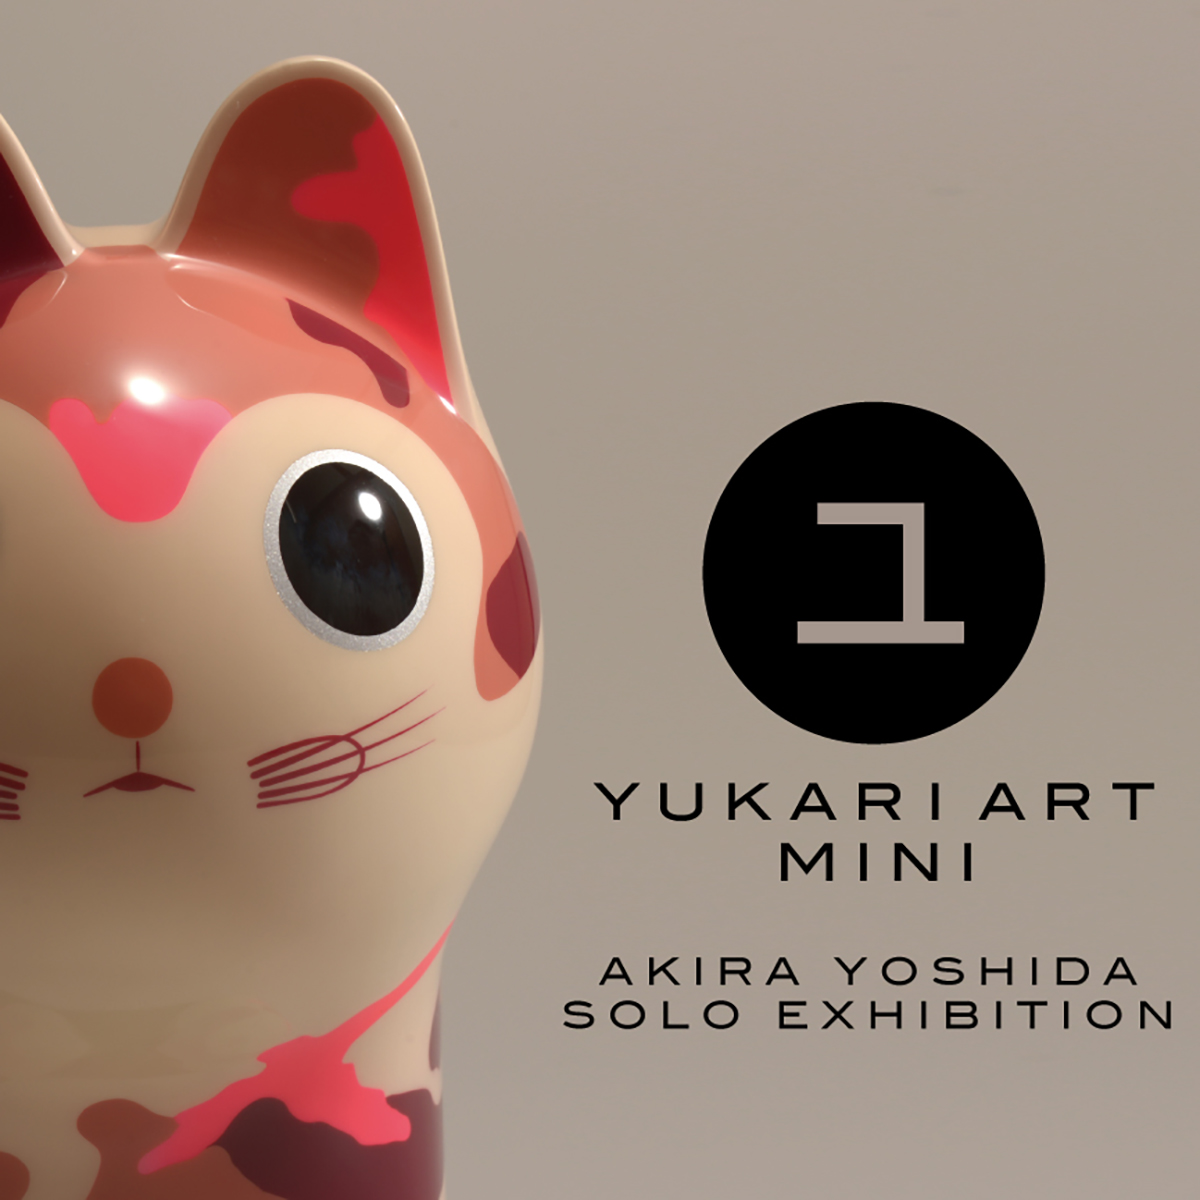 "Tiny window gallery ""YUKARI ART mini"" has just opened!"